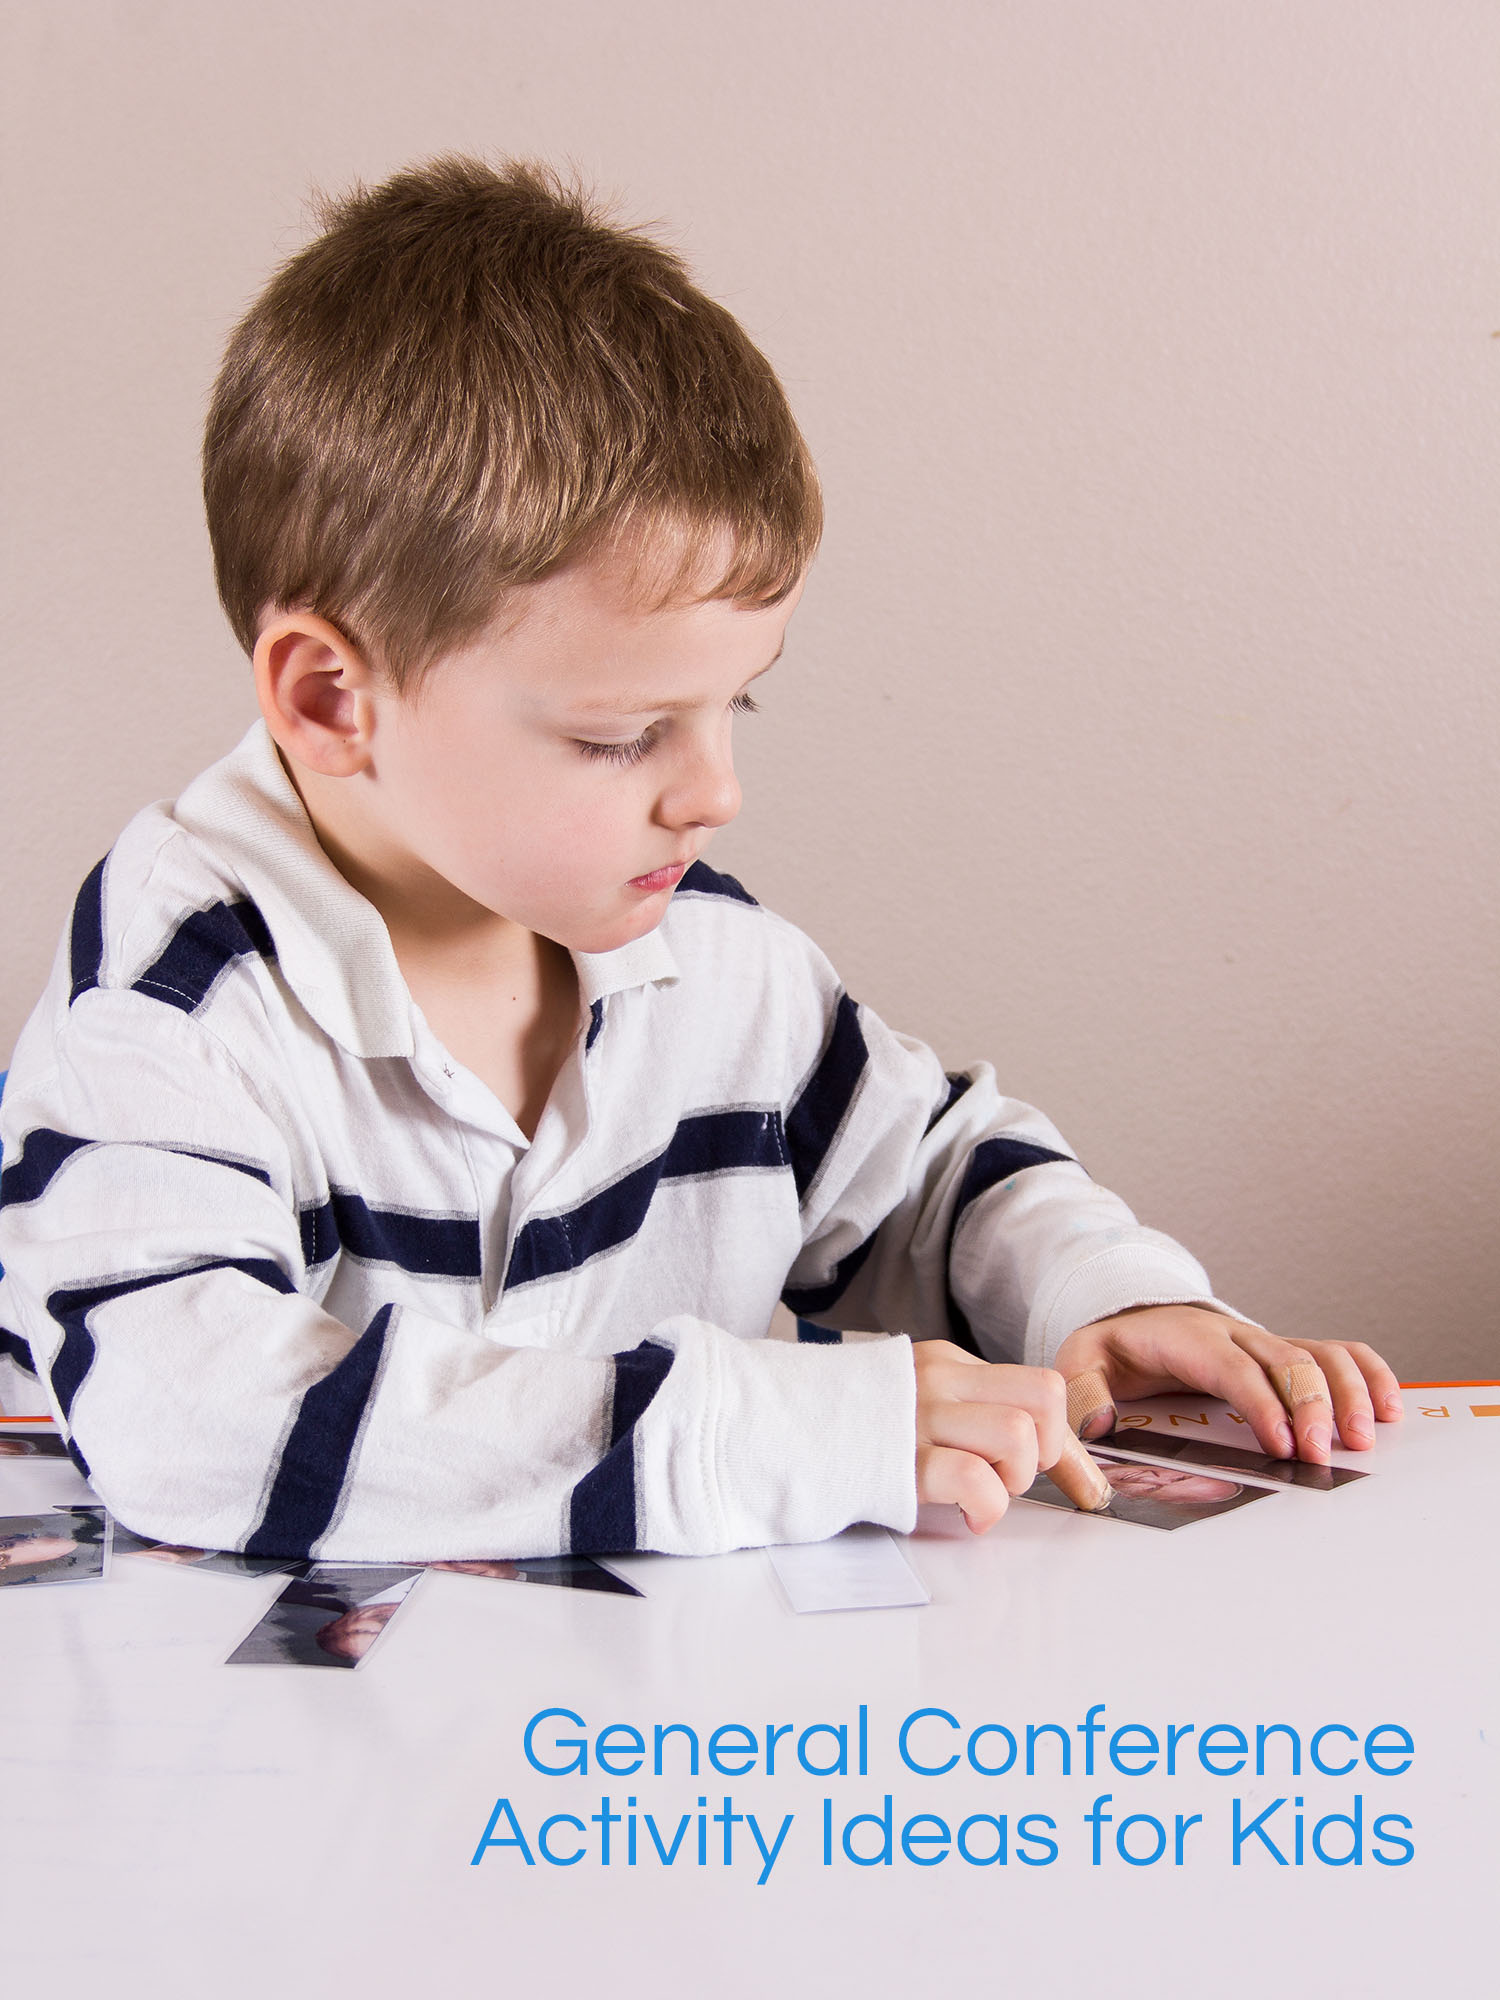 General Conference Is Coming